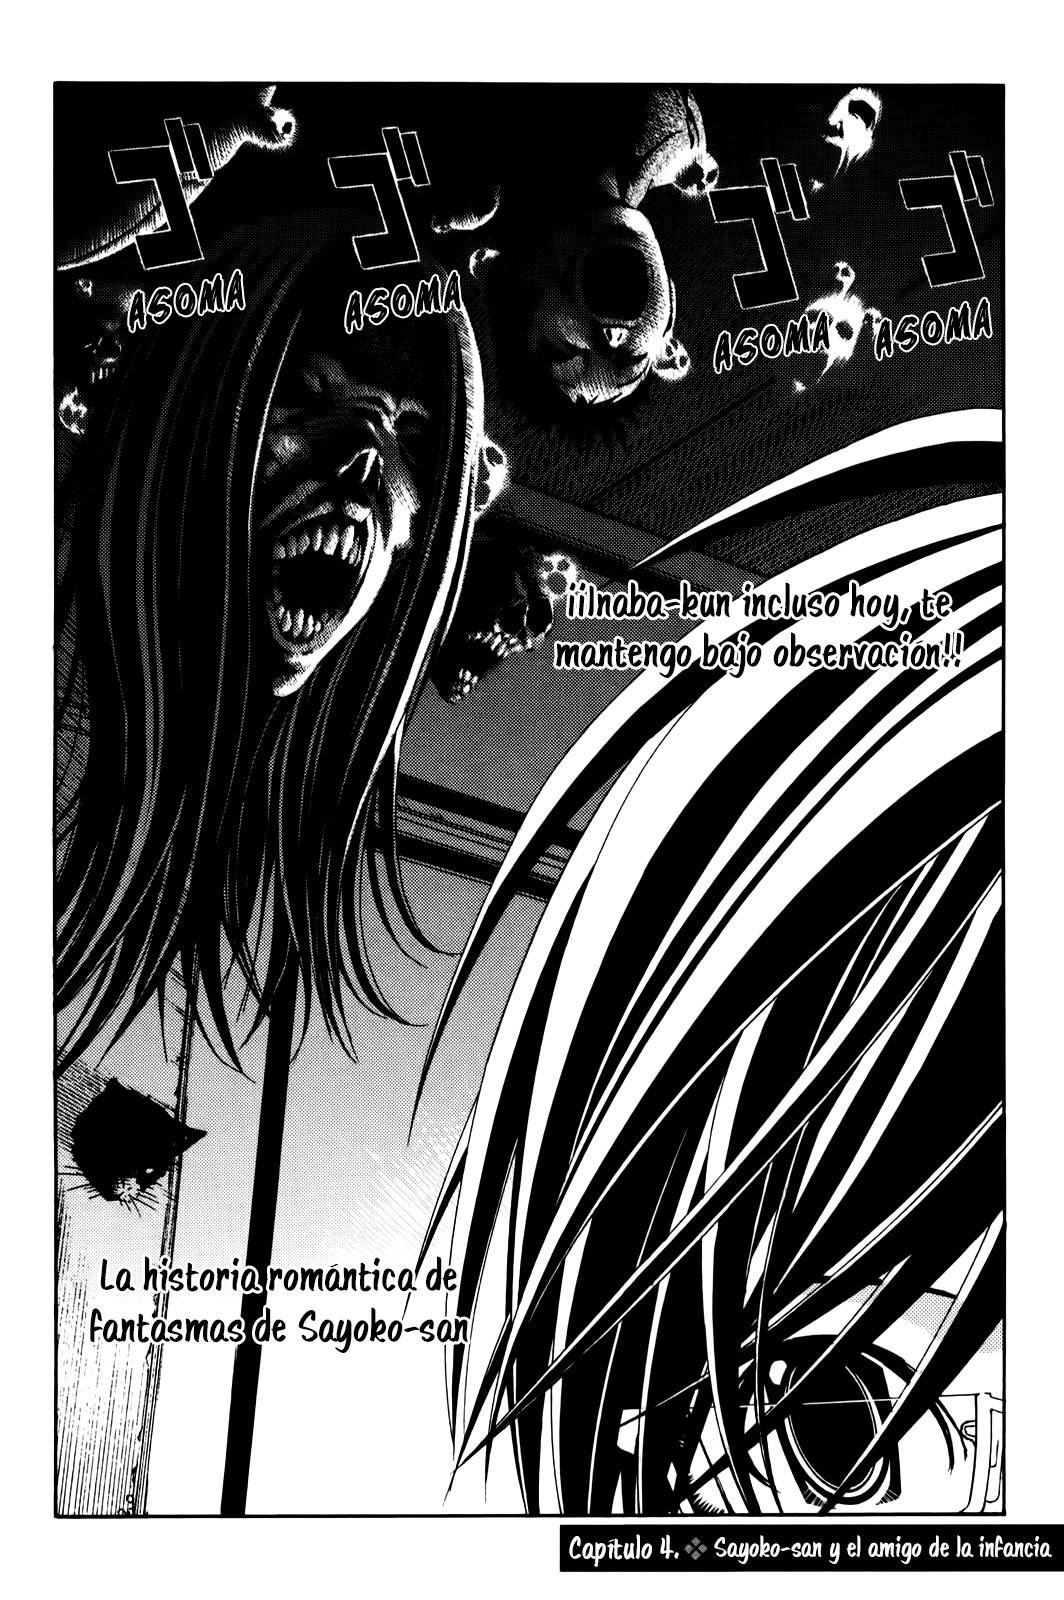 http://c5.ninemanga.com/es_manga/20/18580/468329/0b9092dbc5e3a91d6df24256675003d8.jpg Page 2